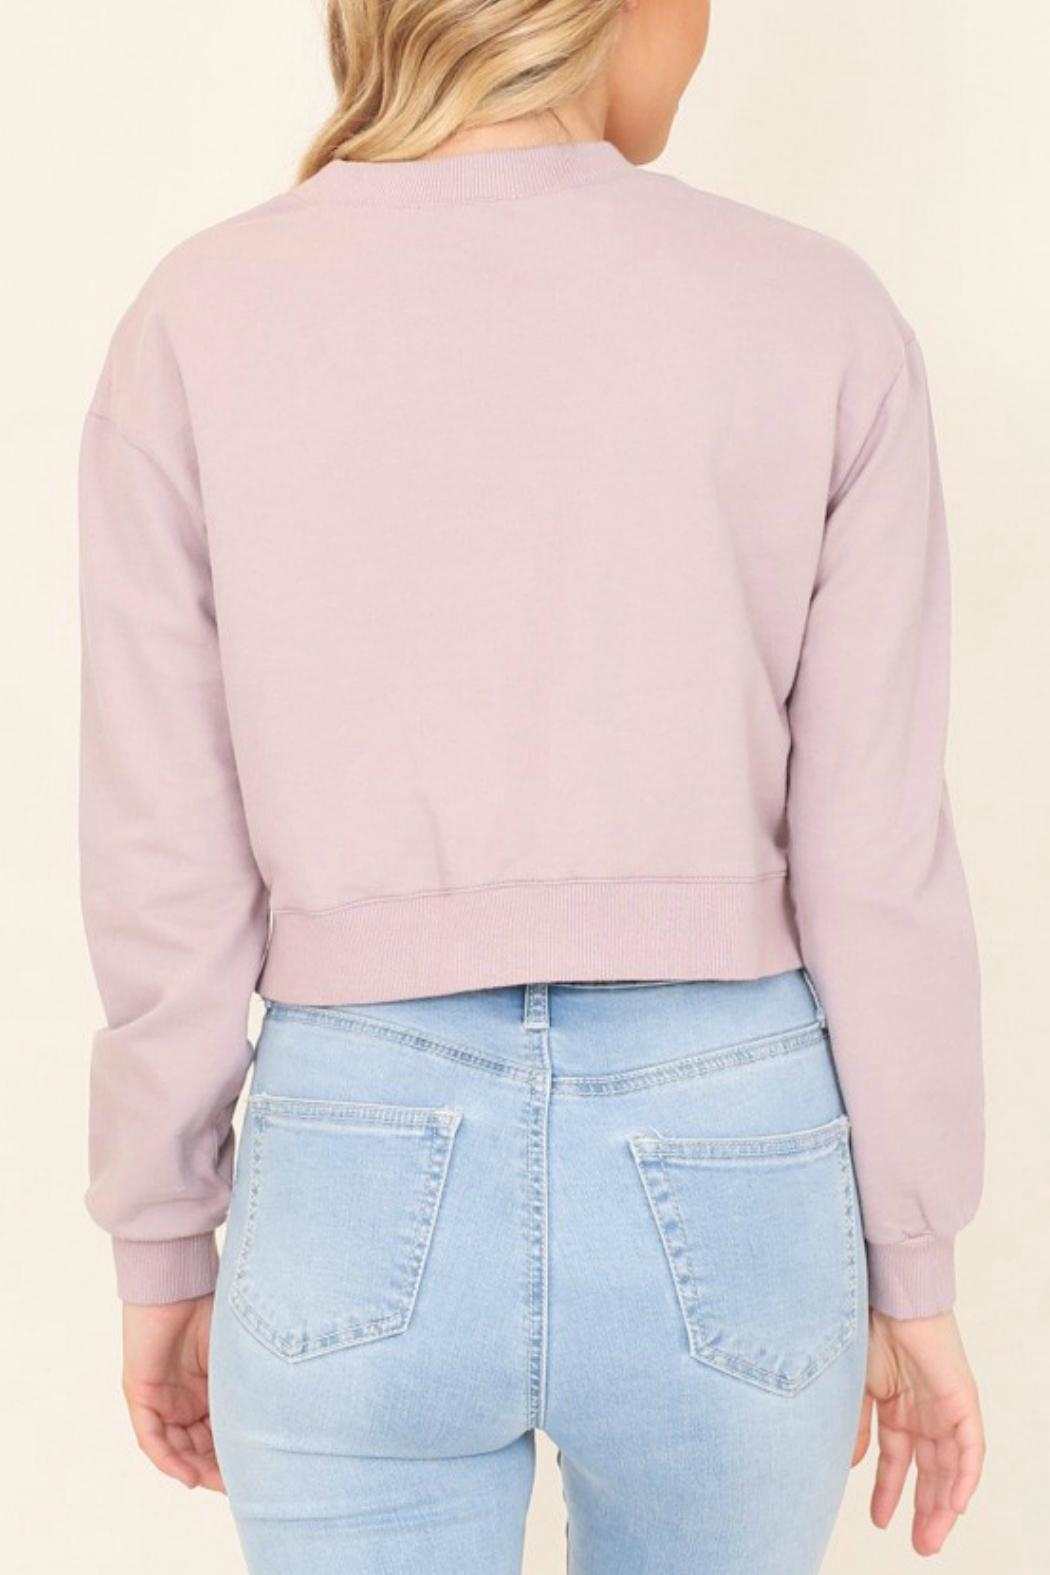 Illa Illa Cropped Side-Lace Sweatshirt - Front Full Image